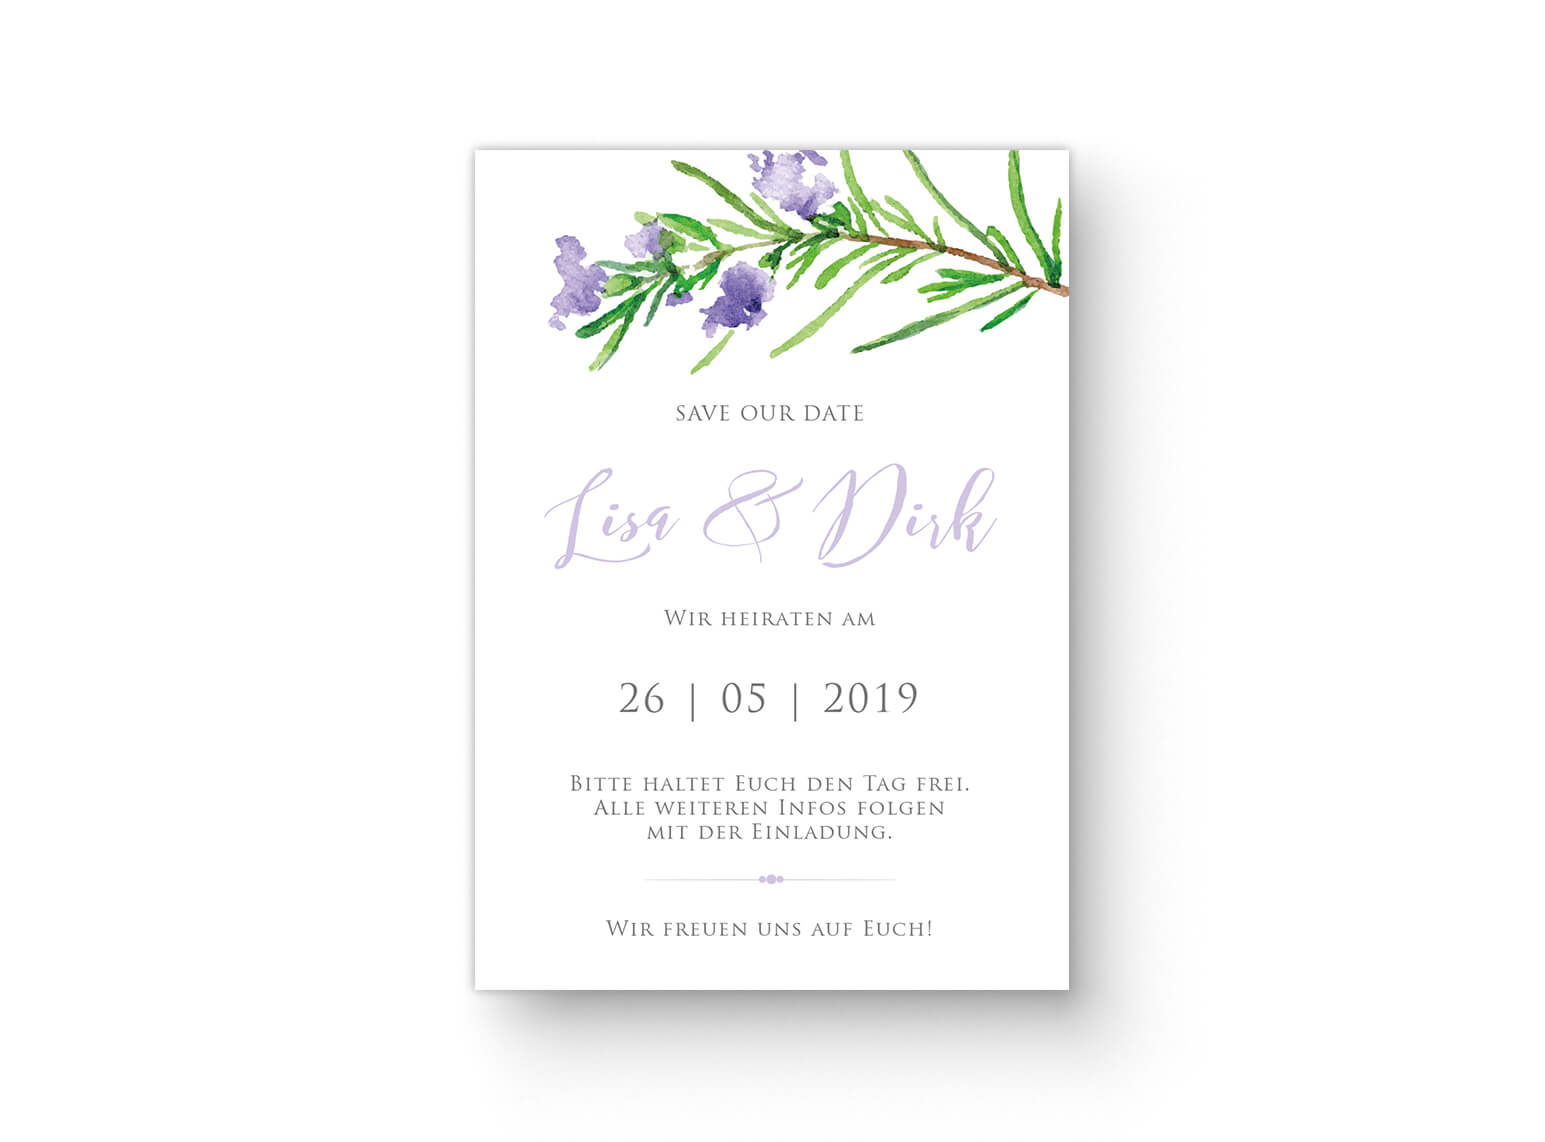 Save-The-Date Karte Rosmarin Aquarell Grün, Violett